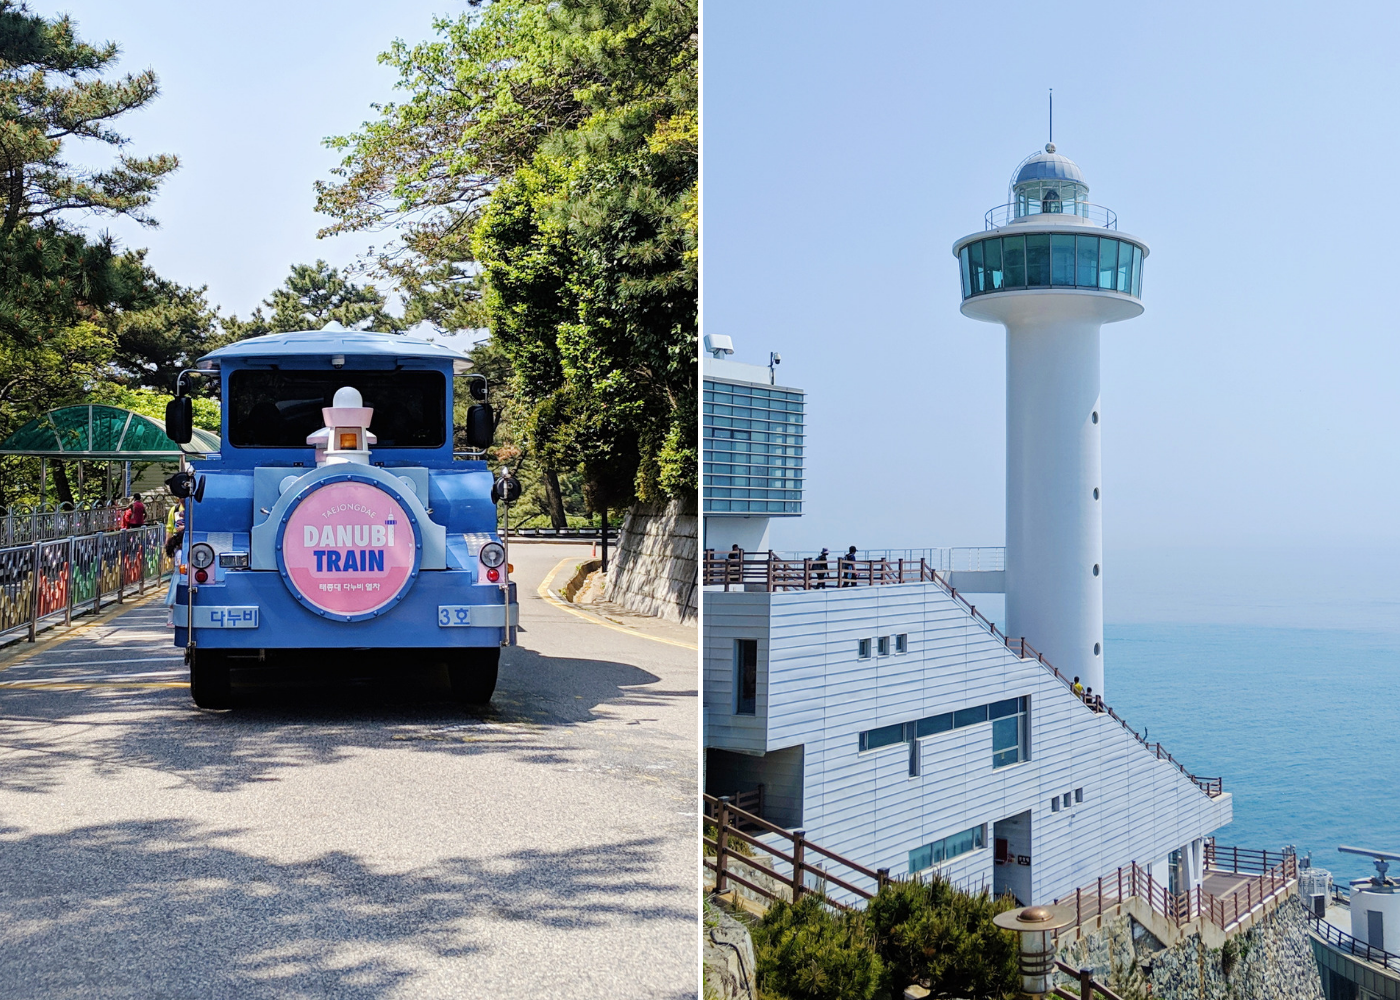 Left: the Danubi train, right: Yeongdo lighthouse.